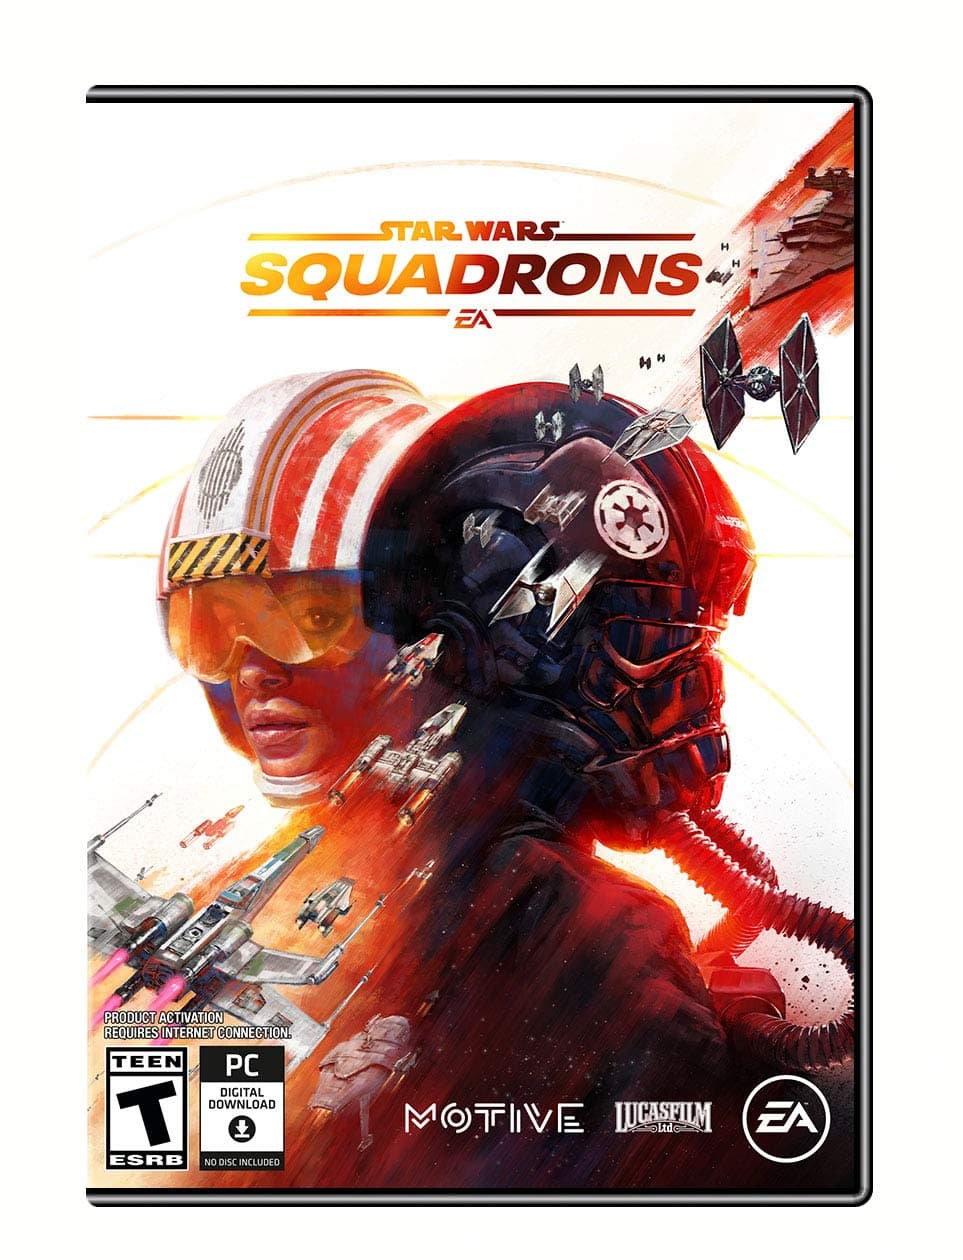 Star Wars Squadrons for Steam or Origin 25% off $29.99